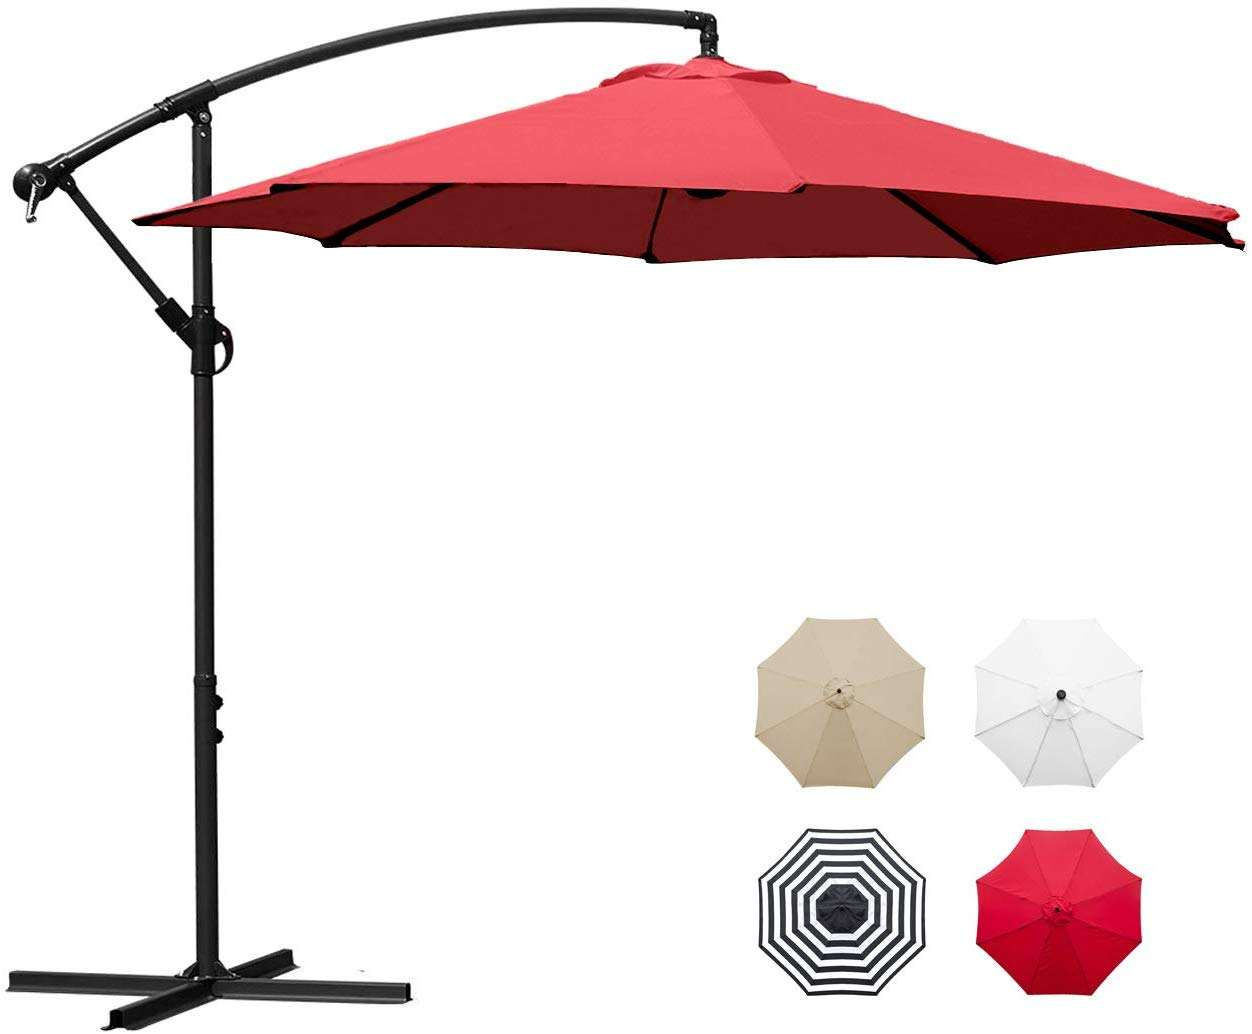 3M Polyester Waterproof Garden Patio Umbrella Parasol With Rotation Base, Steel Banana Hanging Umbrella,Sunshade Parasol Outdoor